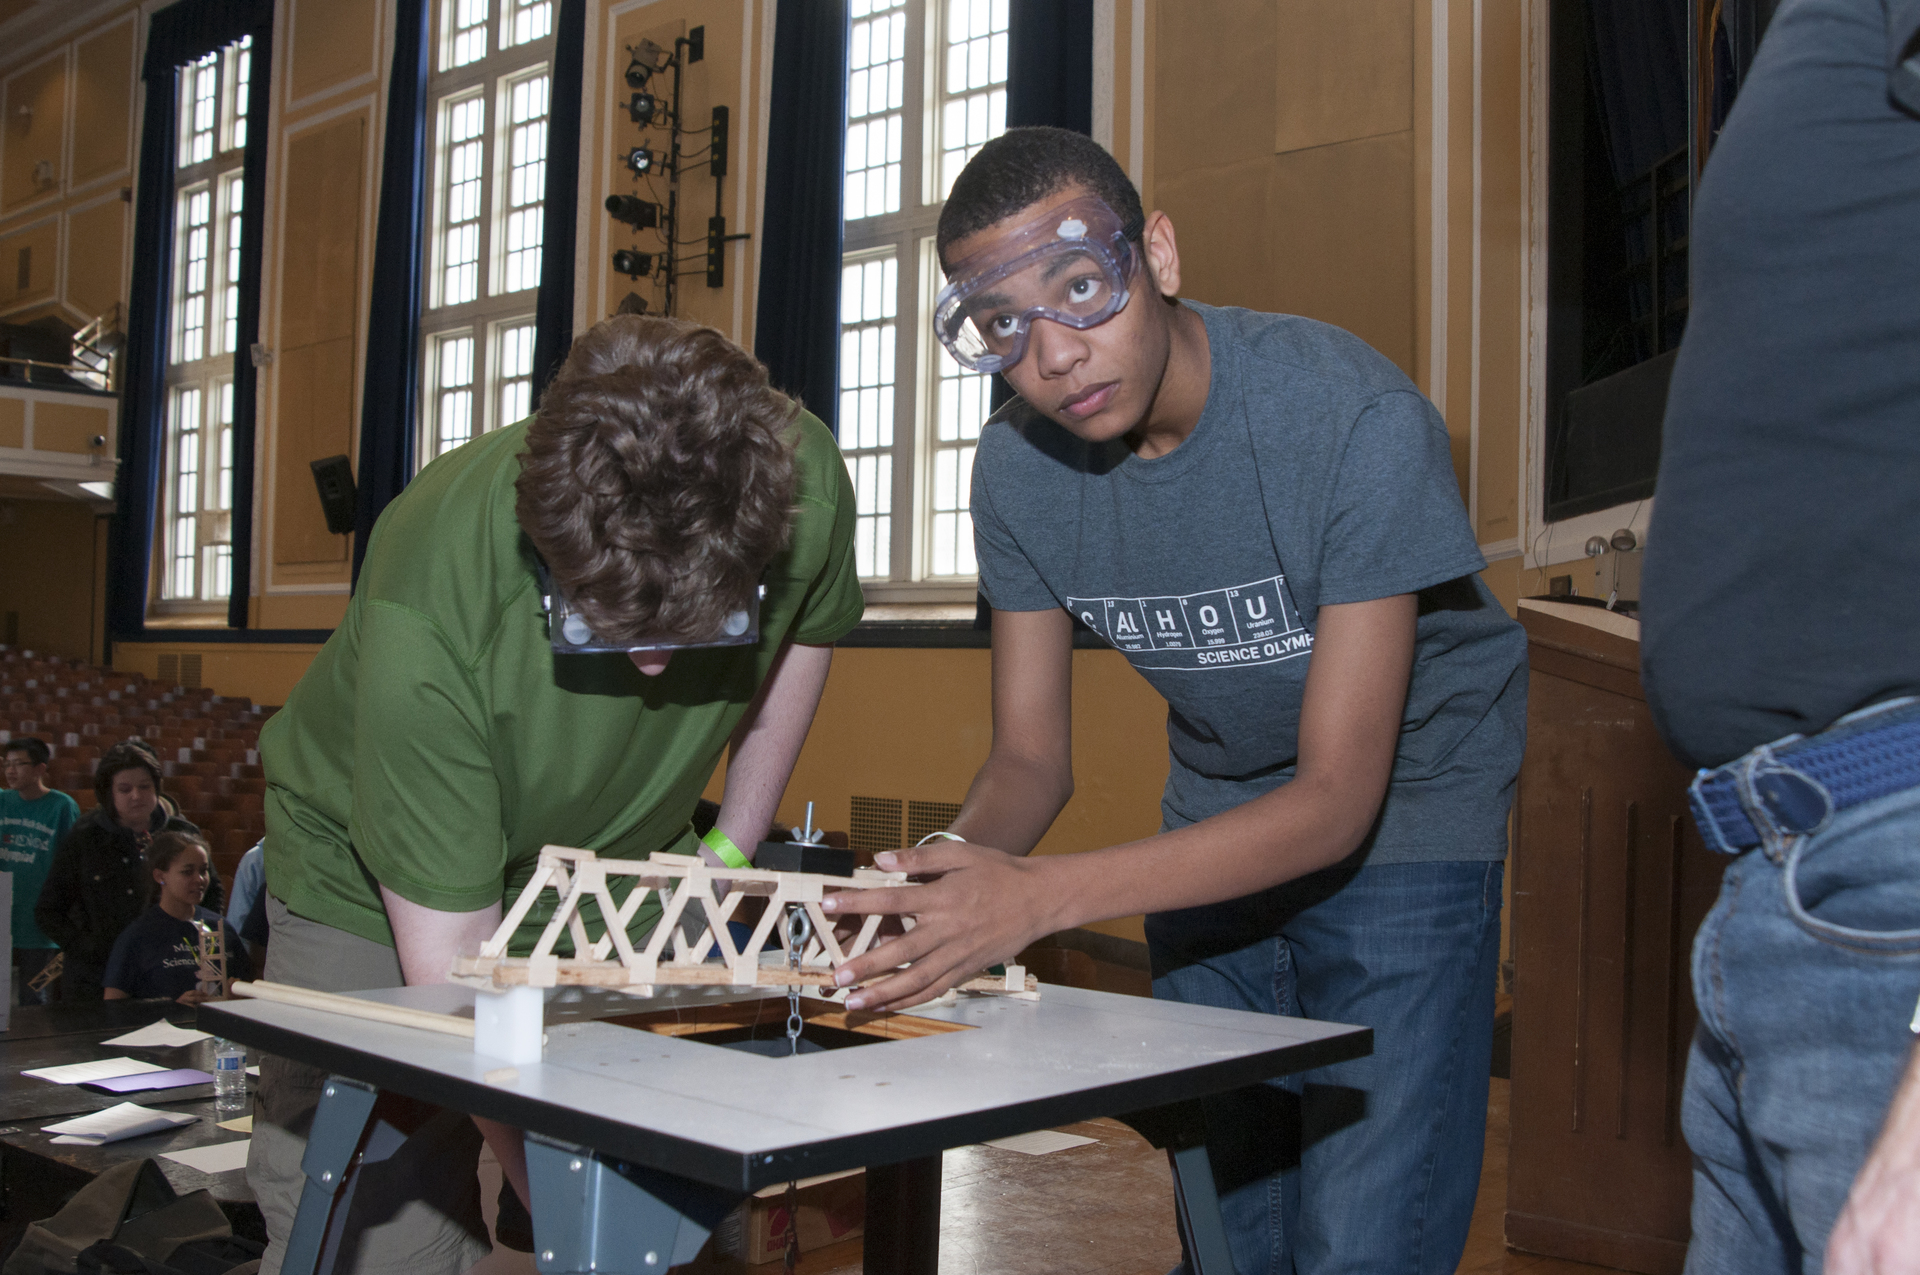 Students competing in the bridge building contest